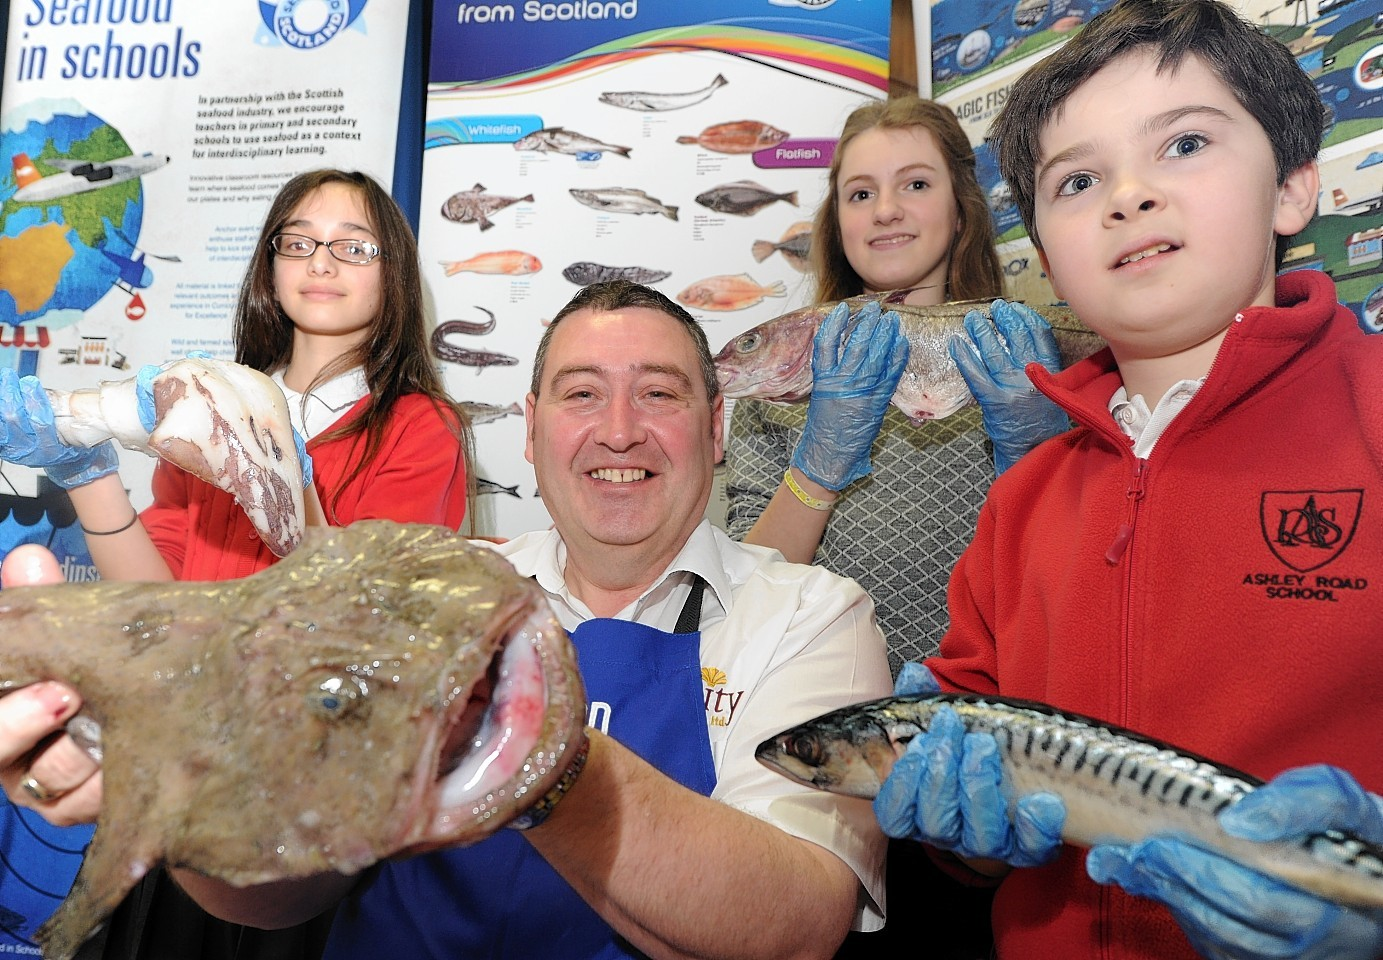 Seafood Scotland's Seafood in Schools project rolled into Aberdeen Grammar School